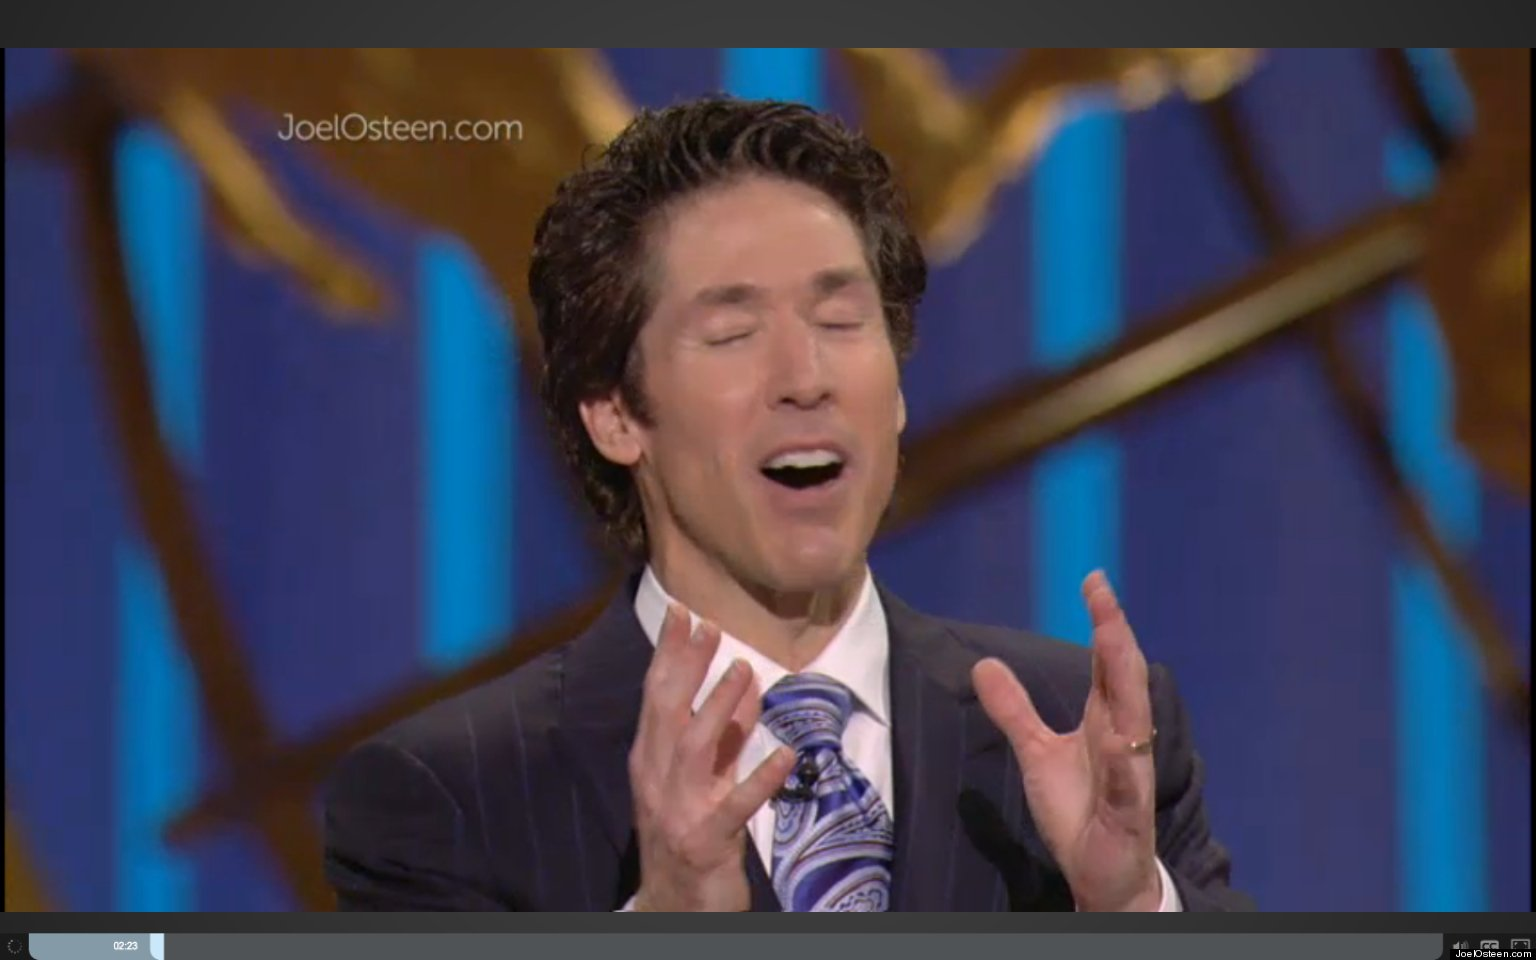 osteen divorced singles Joel osteen on divorce of the core christian values of the church i took the pre-marital classes from there, and before that attended the singles group.